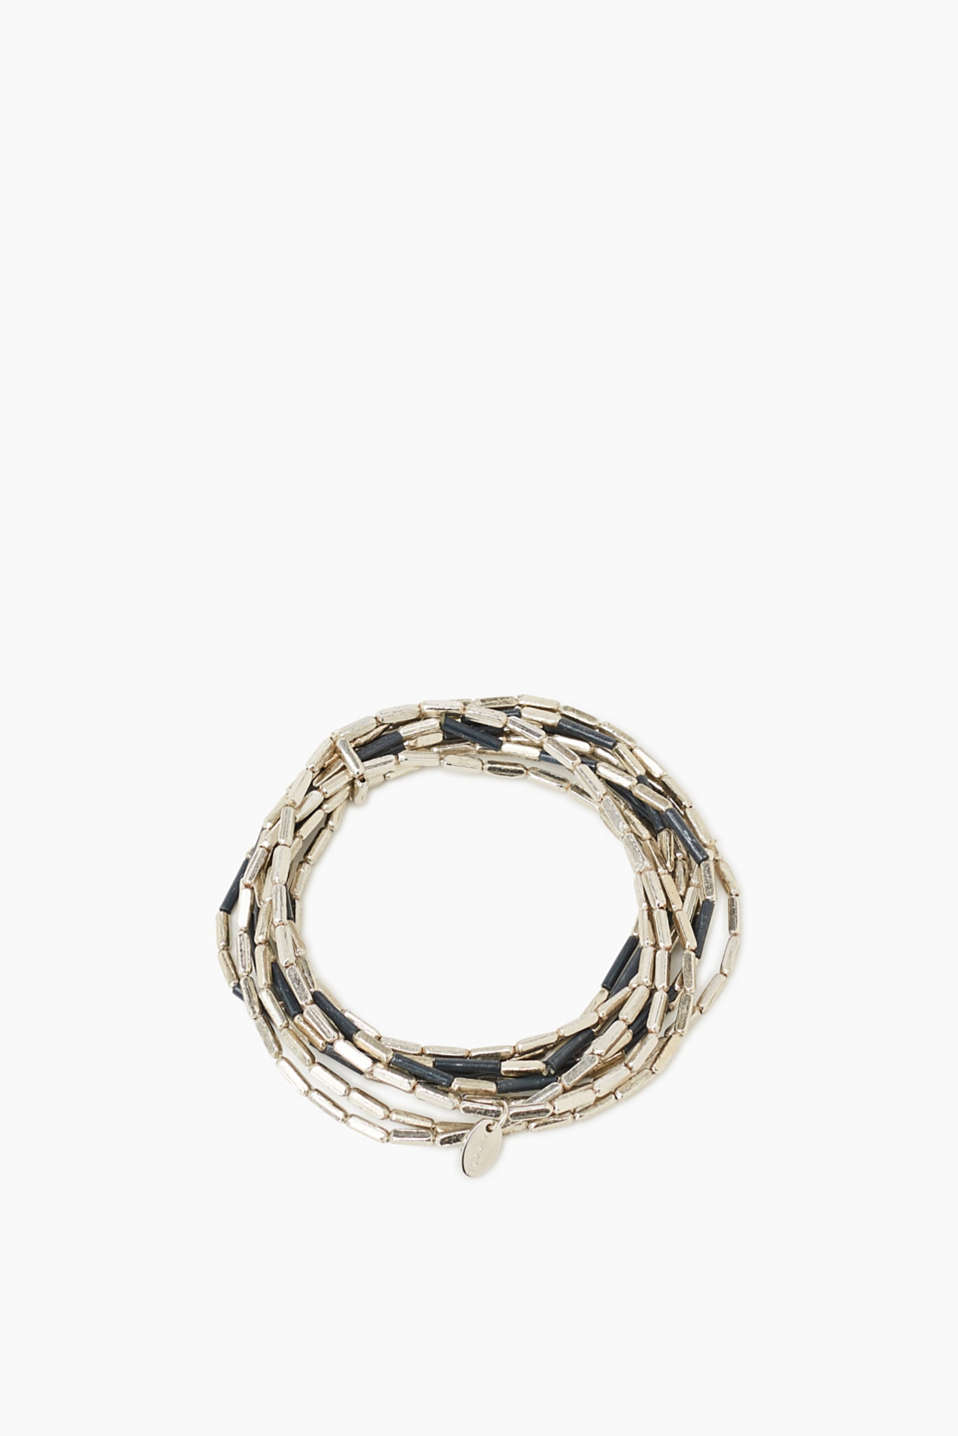 The perfect gift: dainty rows of metal bars give this bracelet its cool style!